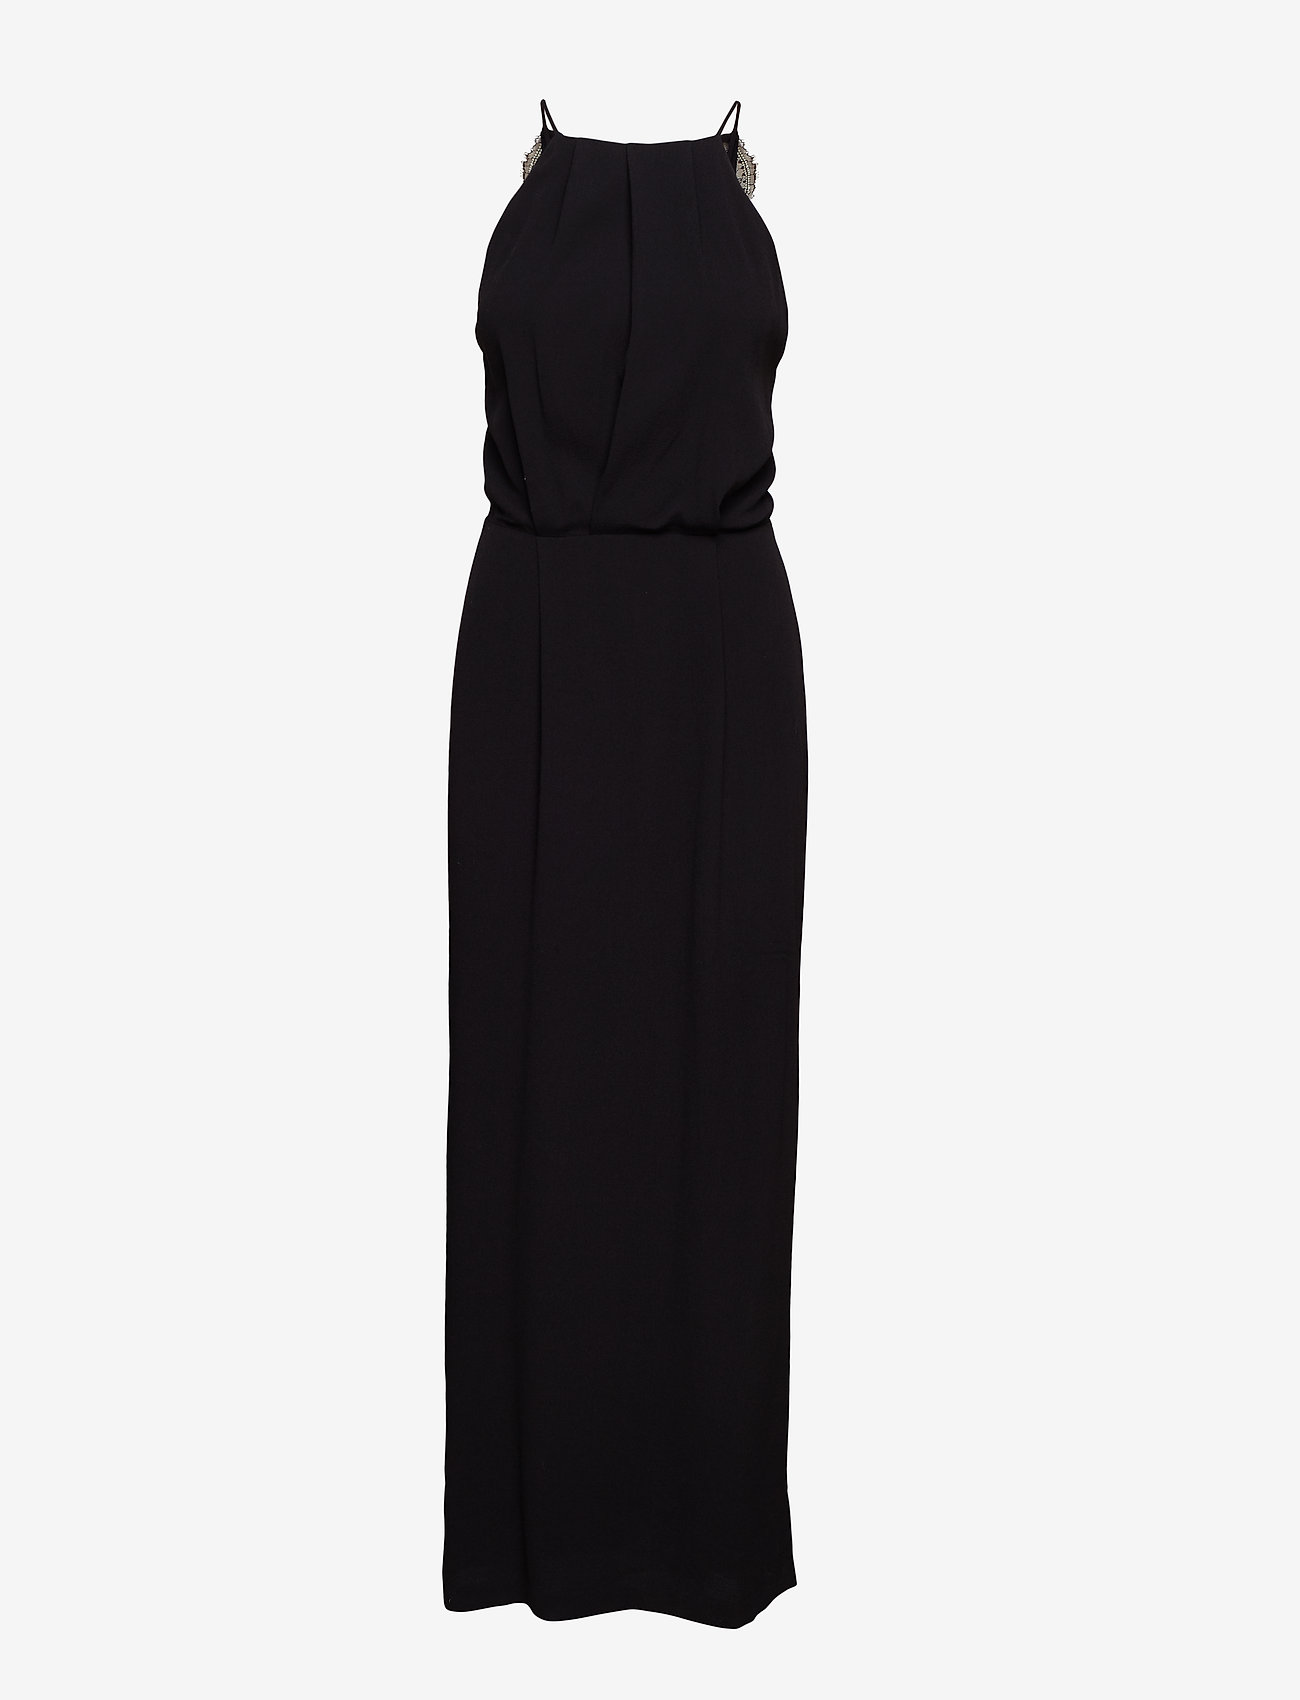 Samsøe Samsøe - Willow dress long 5687 - maxi kjoler - black - 0